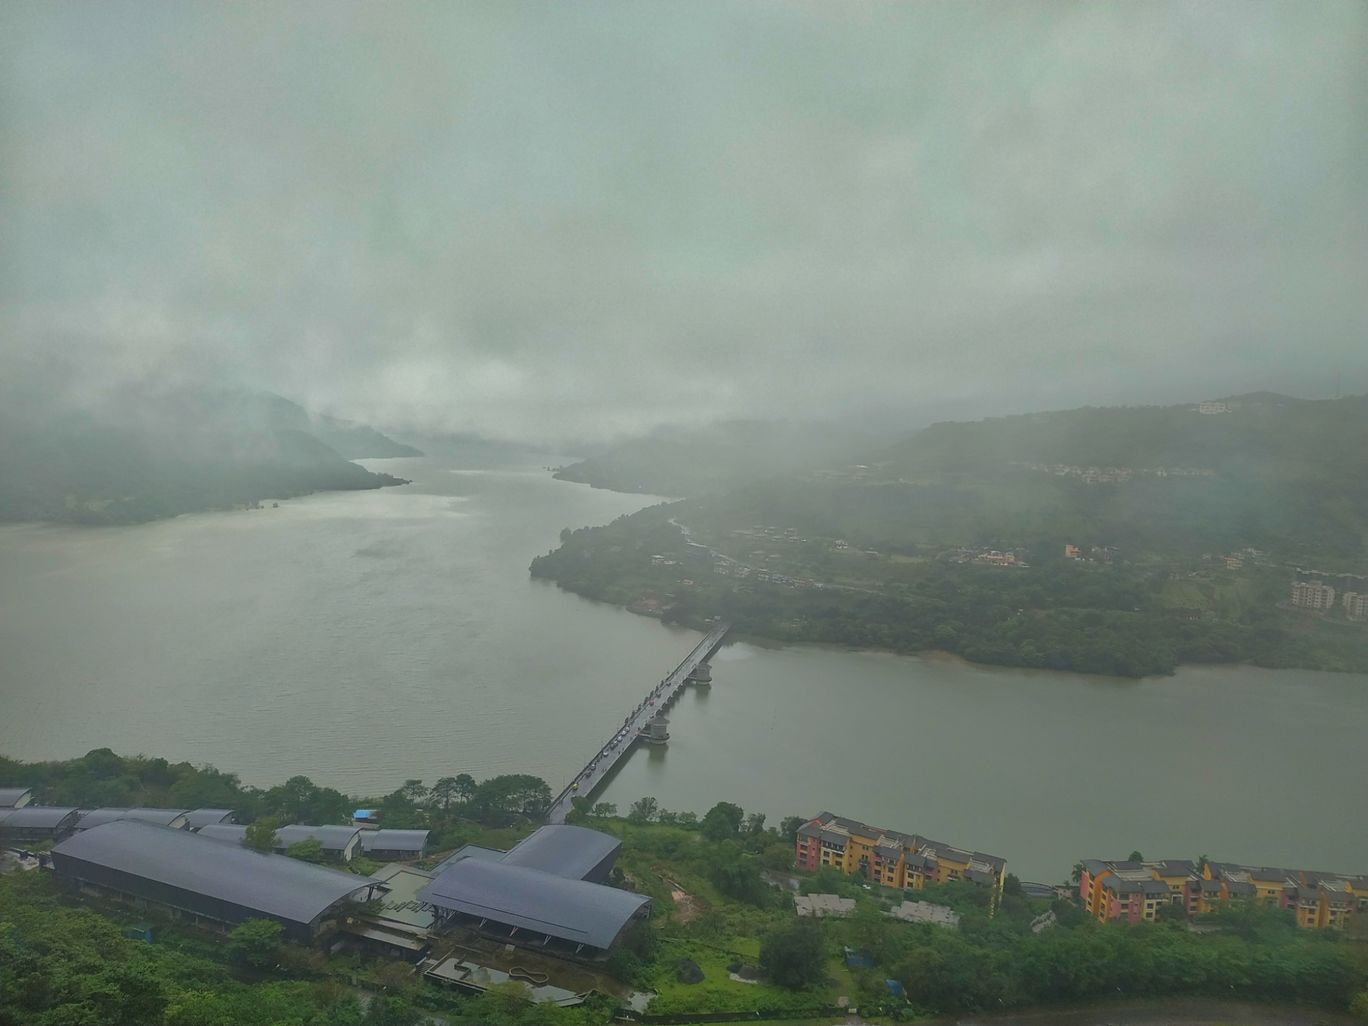 Photo of Lavasa By vinit kumar